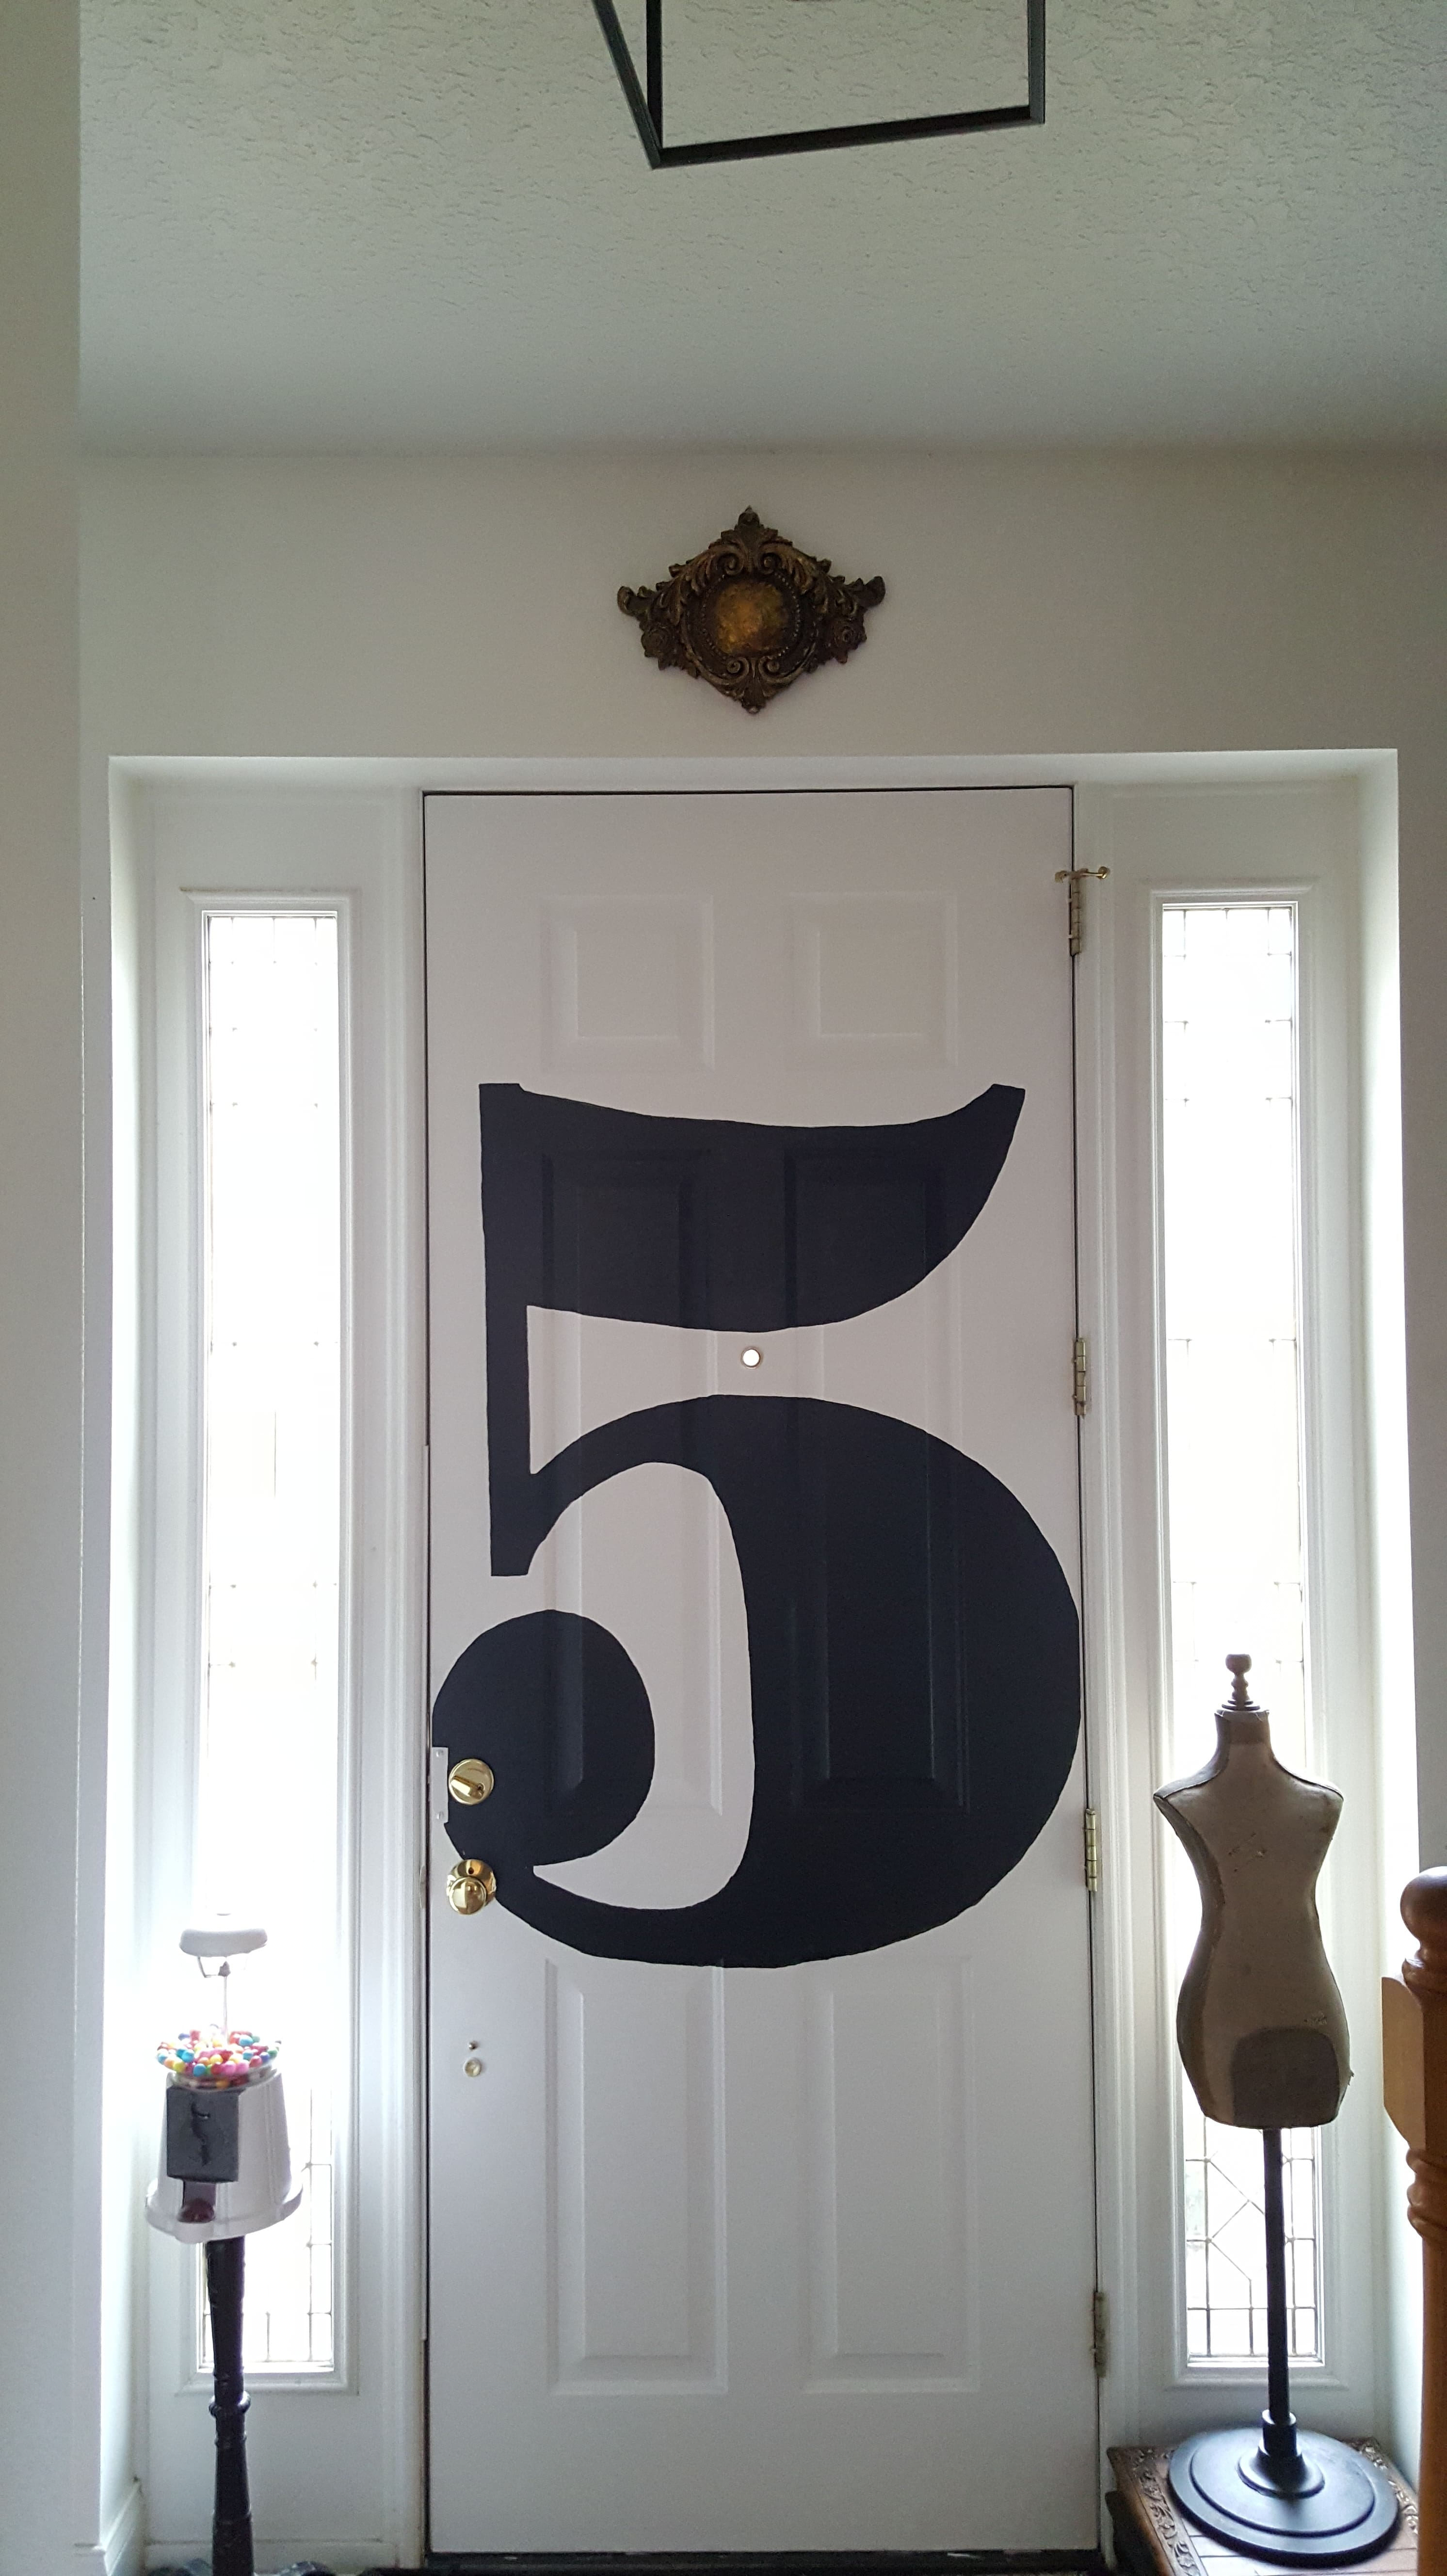 Eclectic Collected Vintage Modern Home Tour - Black and white door decor painted typography number